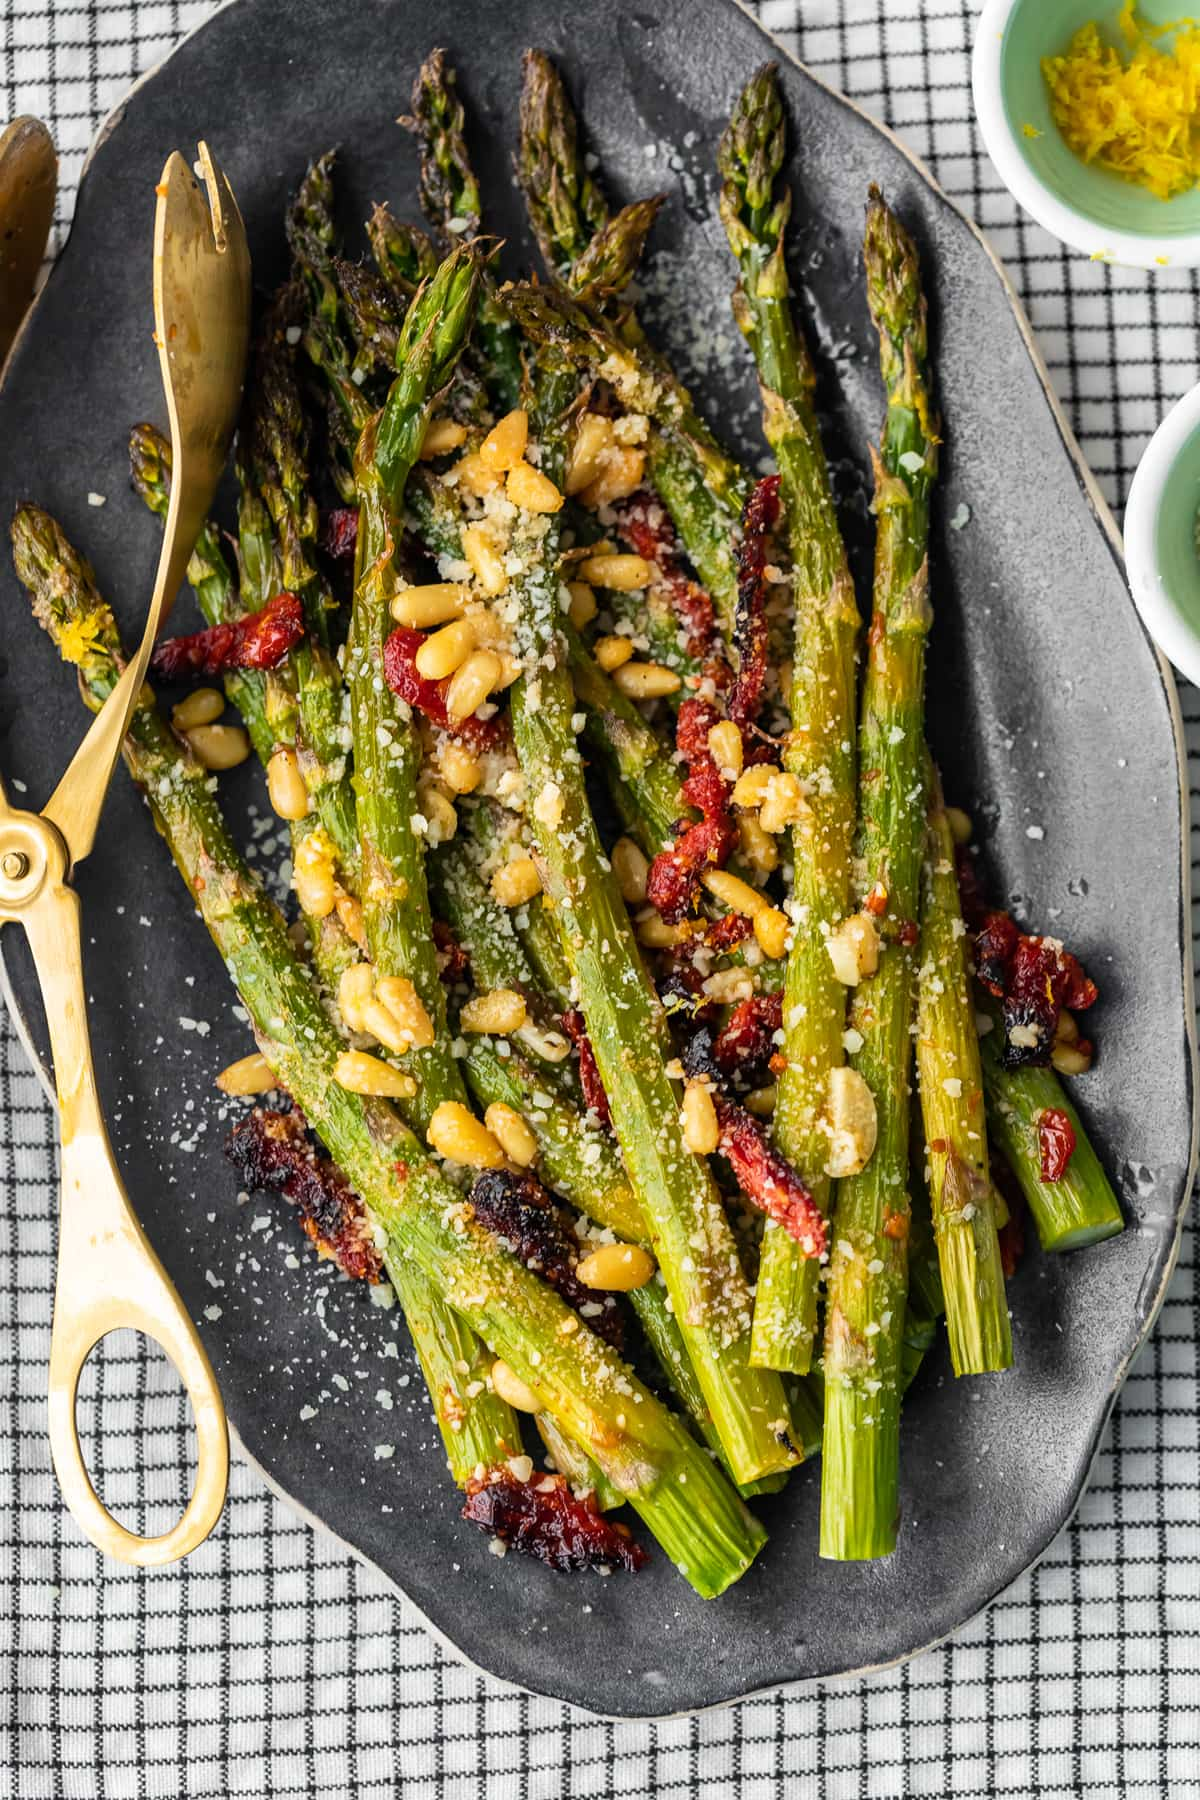 roasted asparagus side dish on a serving platter